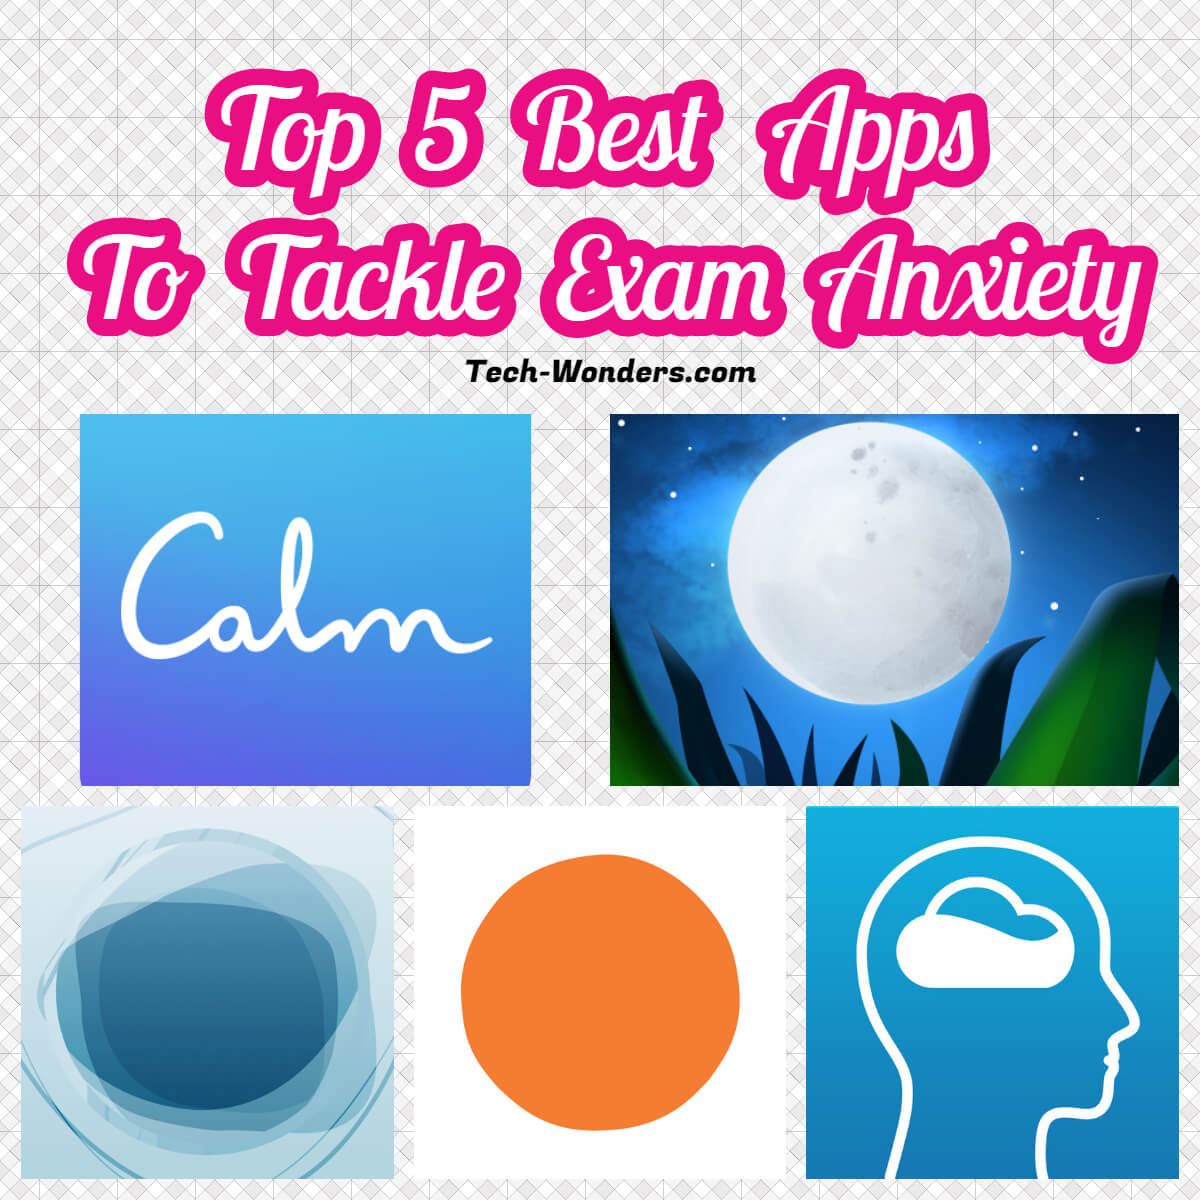 Top 5 Best Apps to Tackle Exam Anxiety